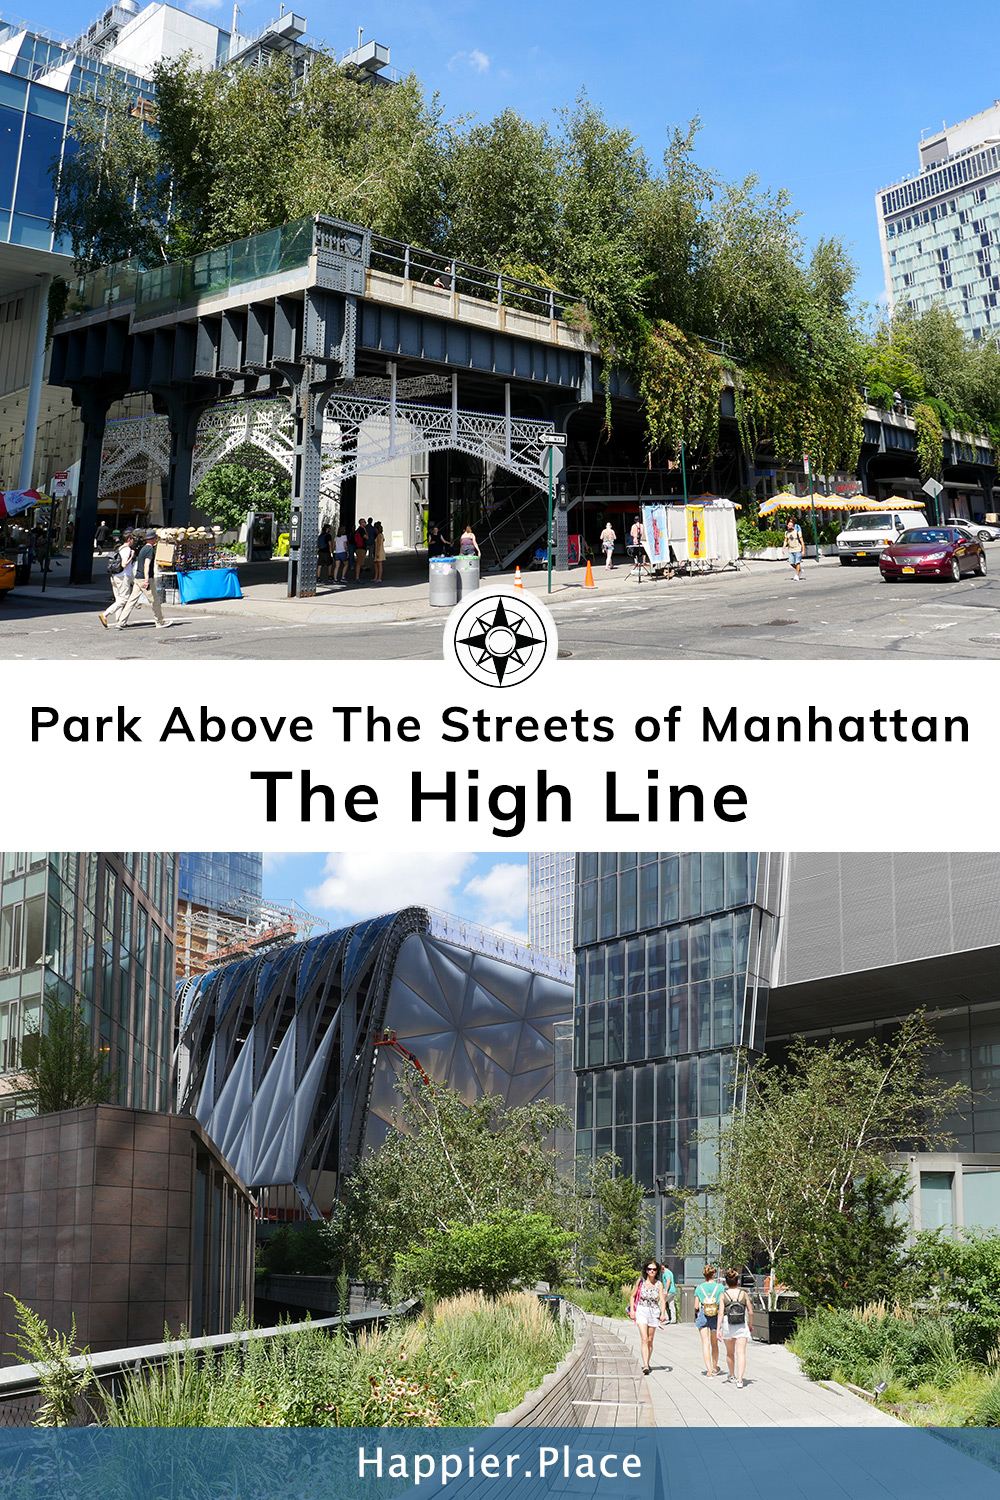 Above The Rest: The High Line - Elevated Park in NYC #HappierPlace #NYC #NewYorkCity